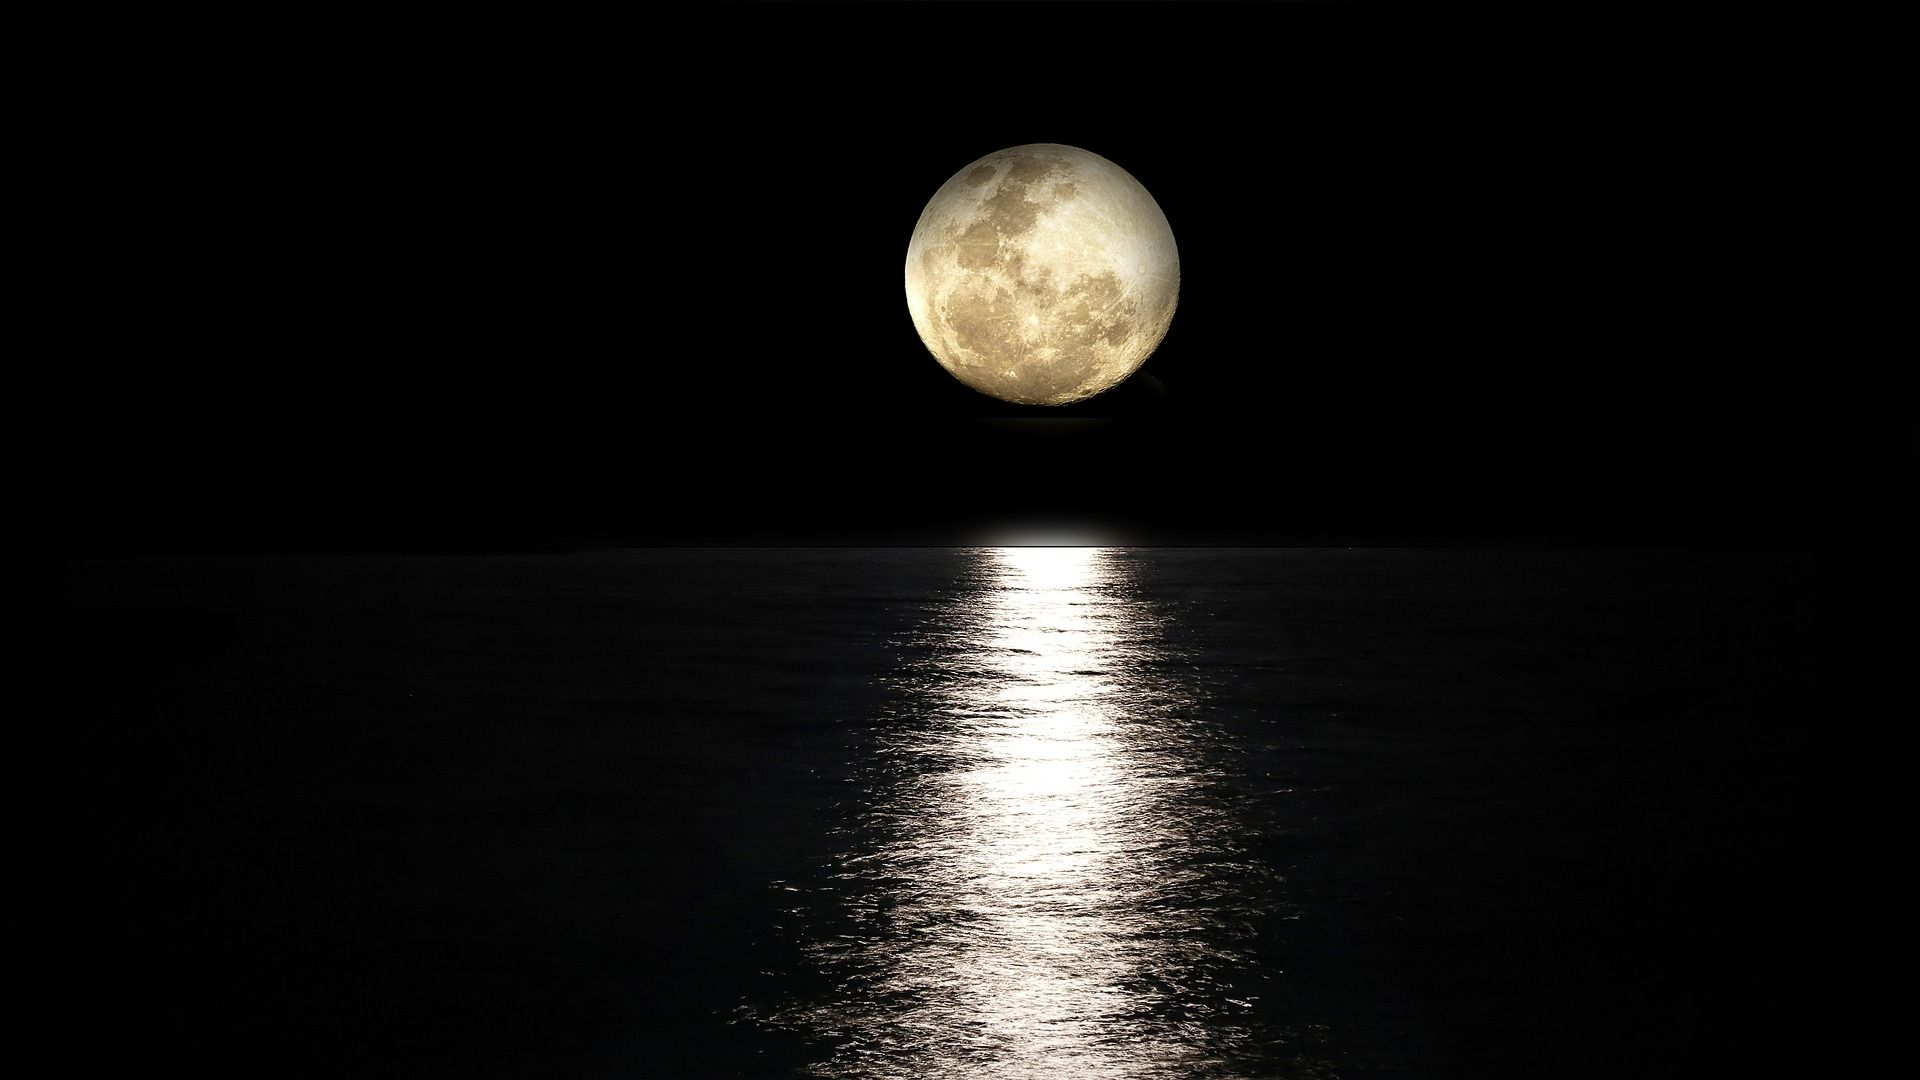 Sea Water And Full Moon Light Reflection View Download Hd Wallpaper Moon Light Reflection Hd Wallpaper